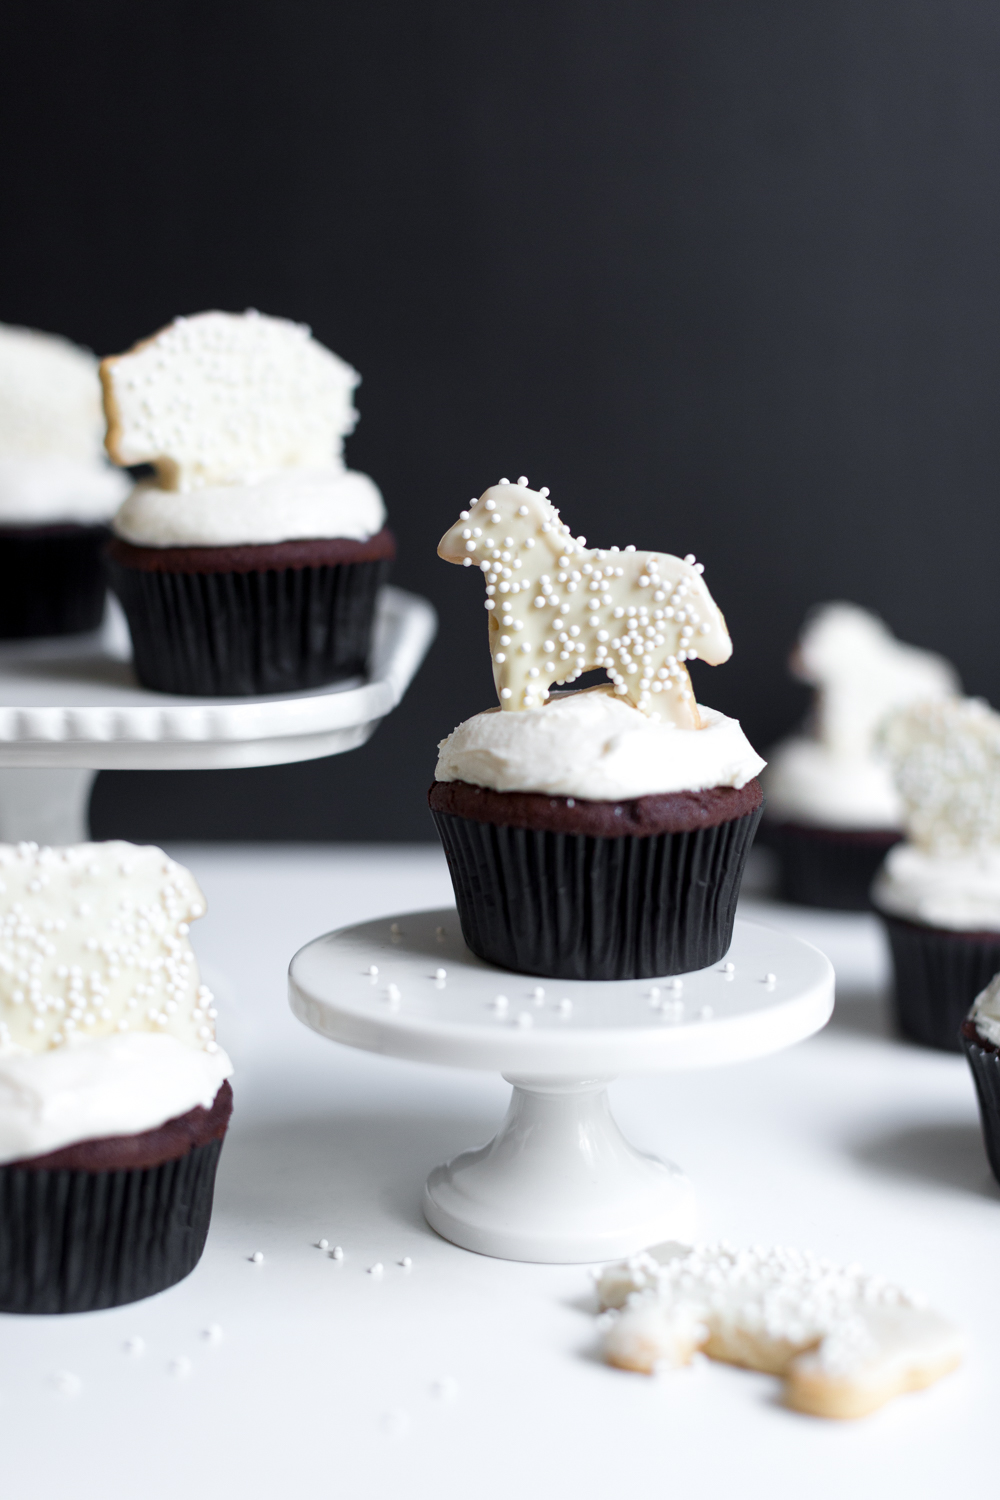 These Black and White Animal Cookie Cupcakes are just darling.